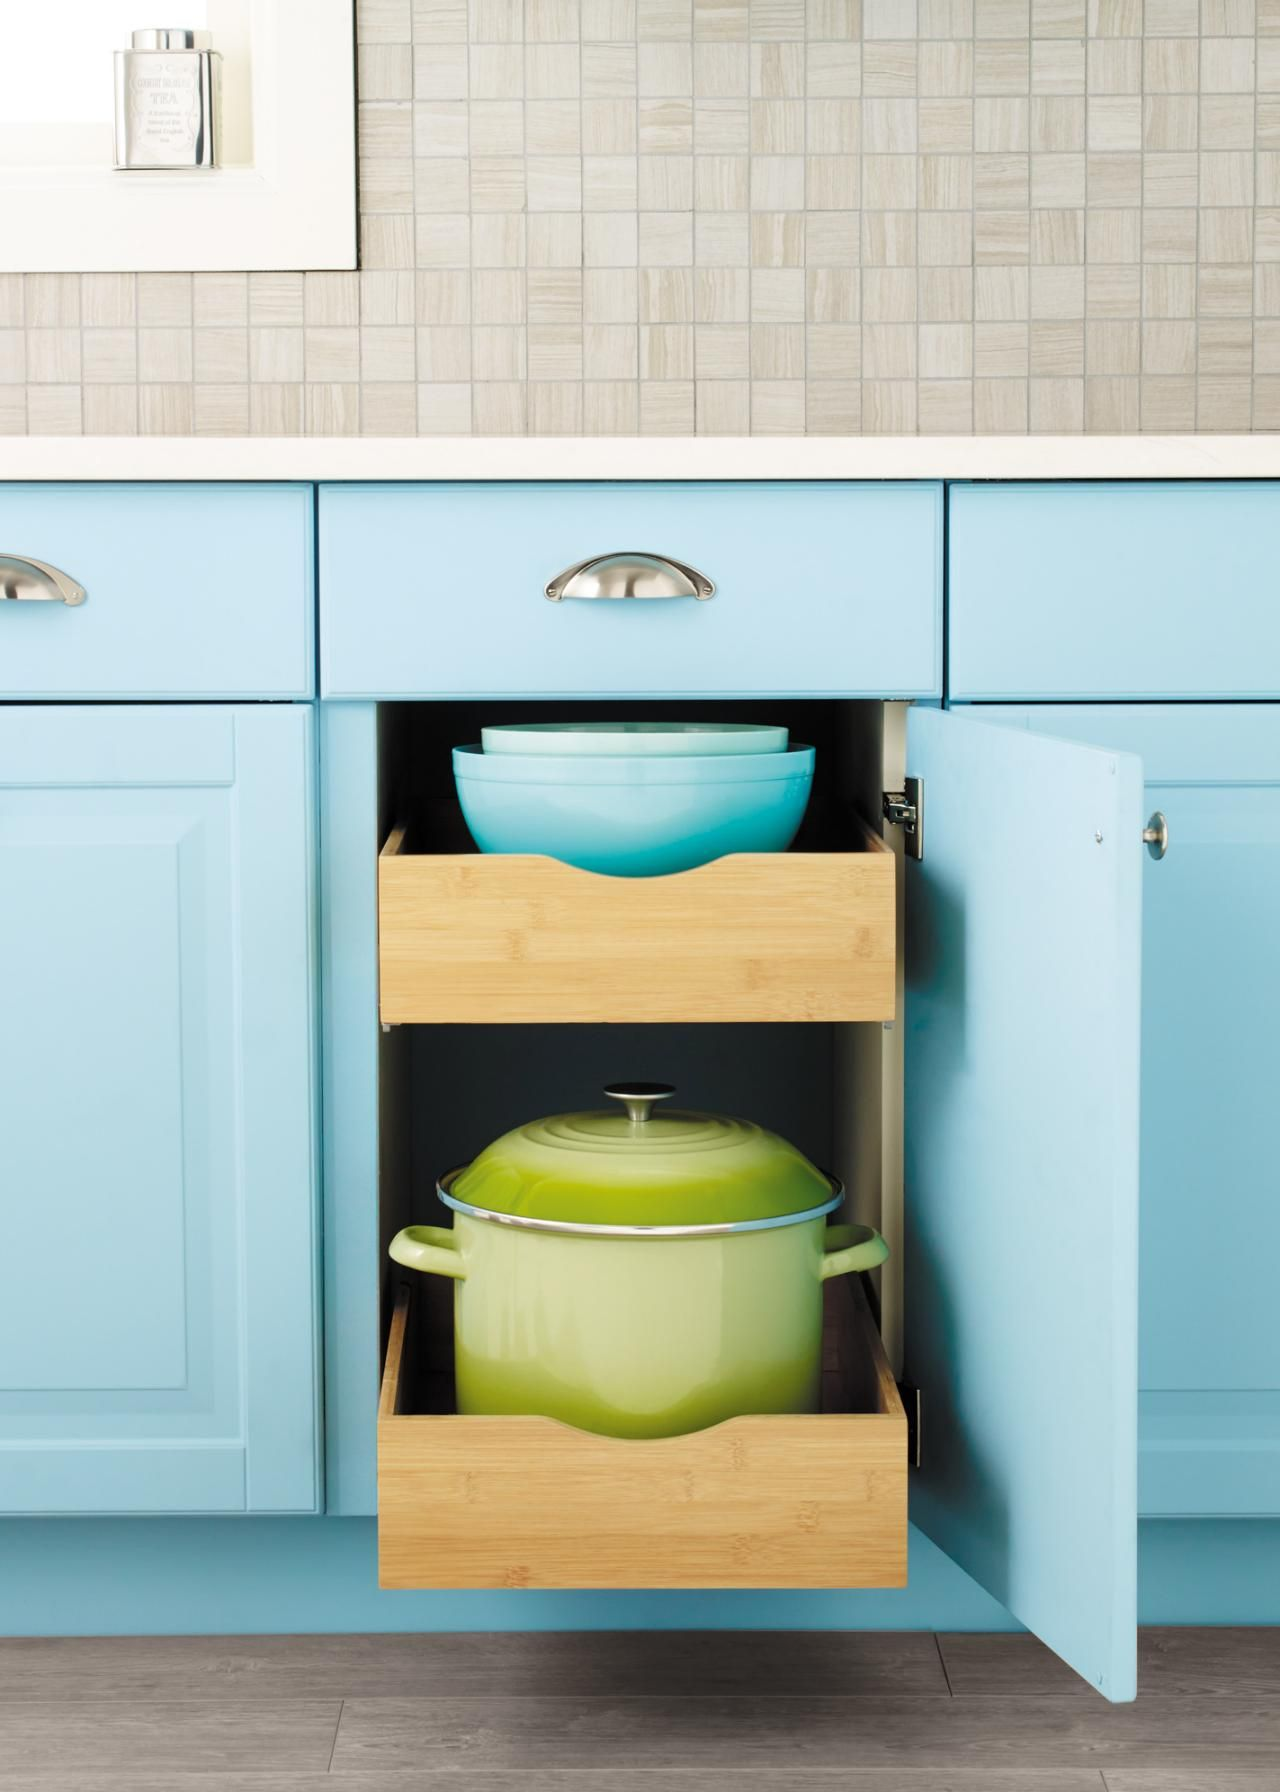 12 Easy Ways to Update Kitchen Cabinets | Hgtv, Container store and ...